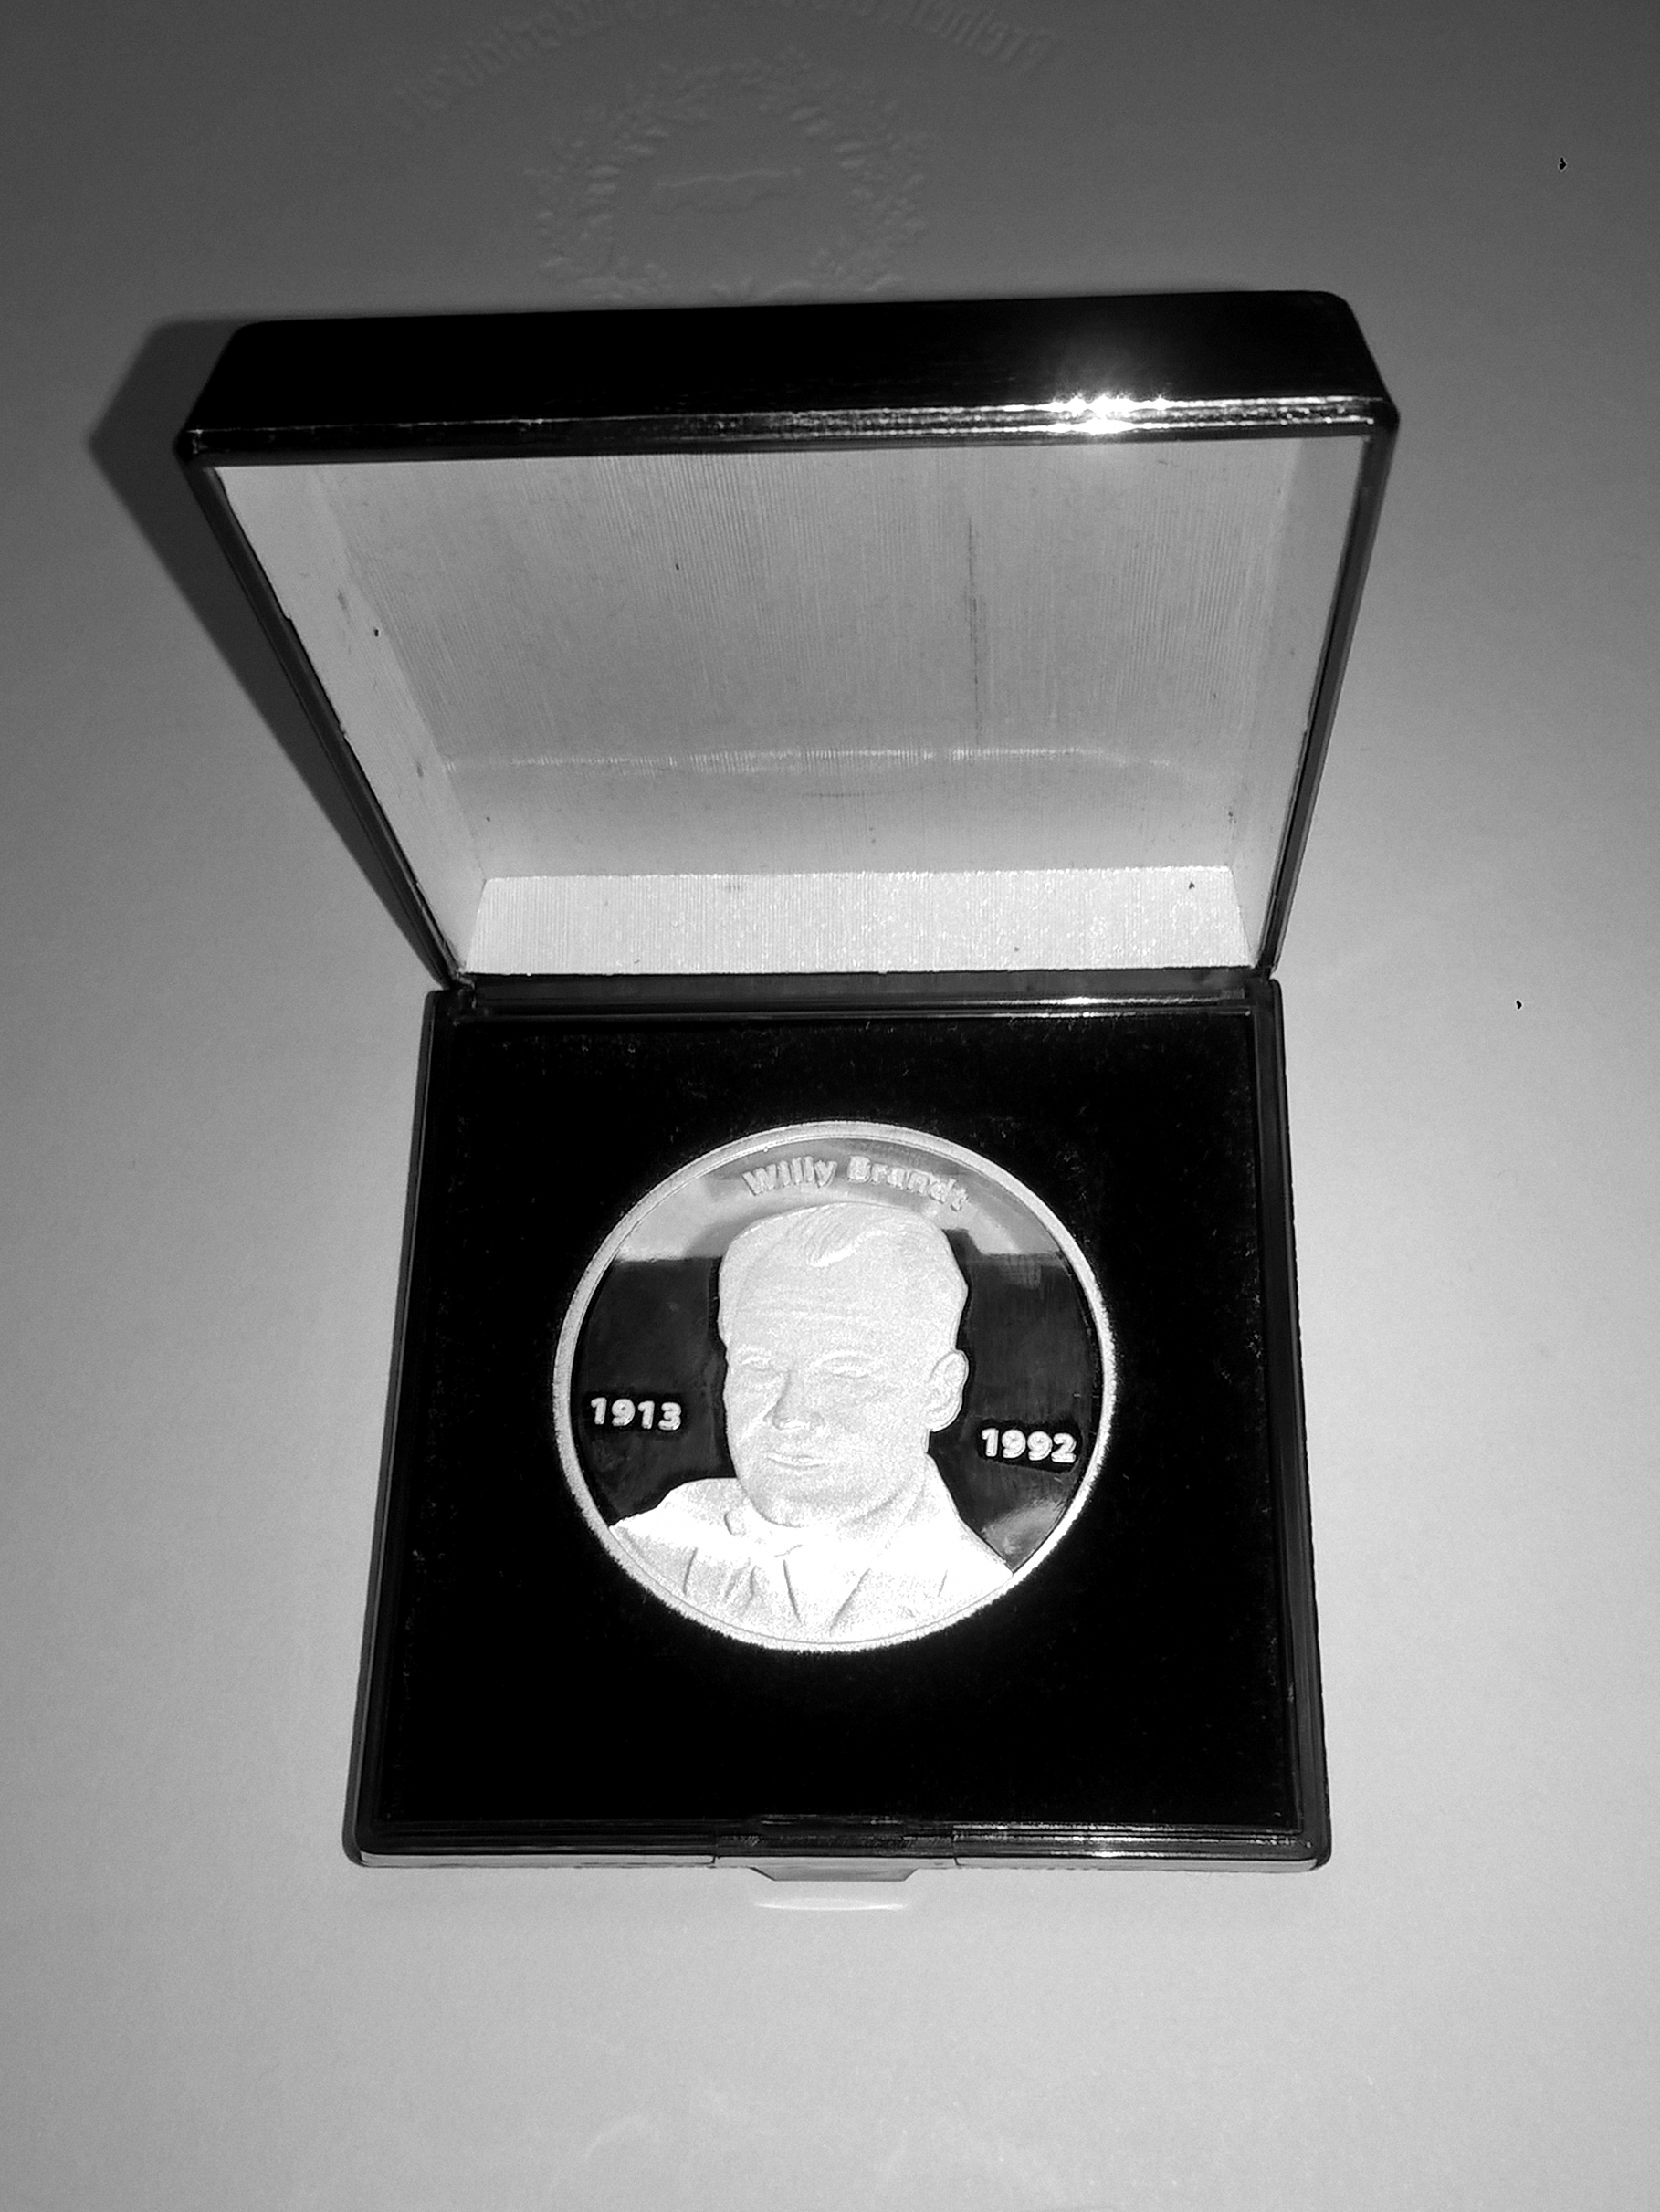 Willy-Brandt-Medaille.jpg